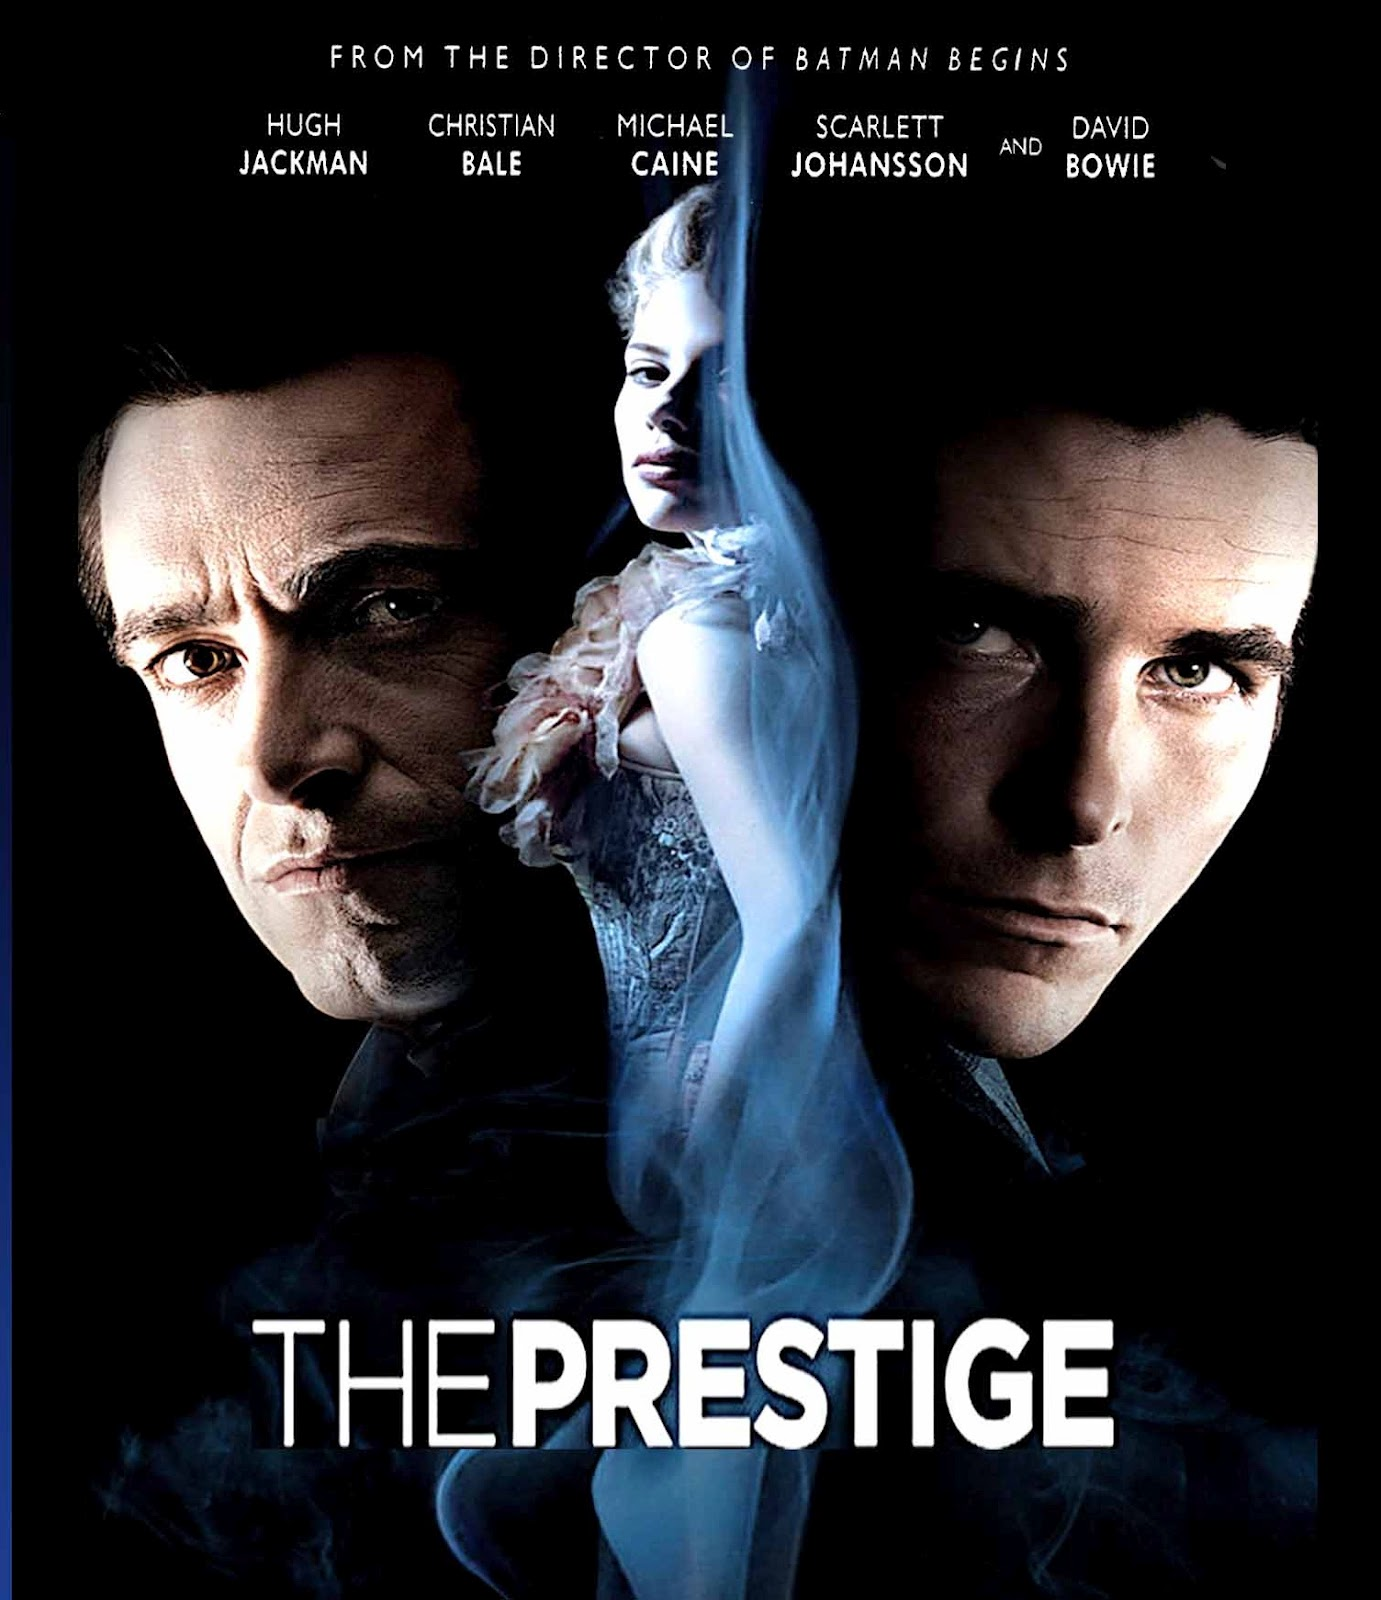 The Prestige whole-movie ESL lesson poster